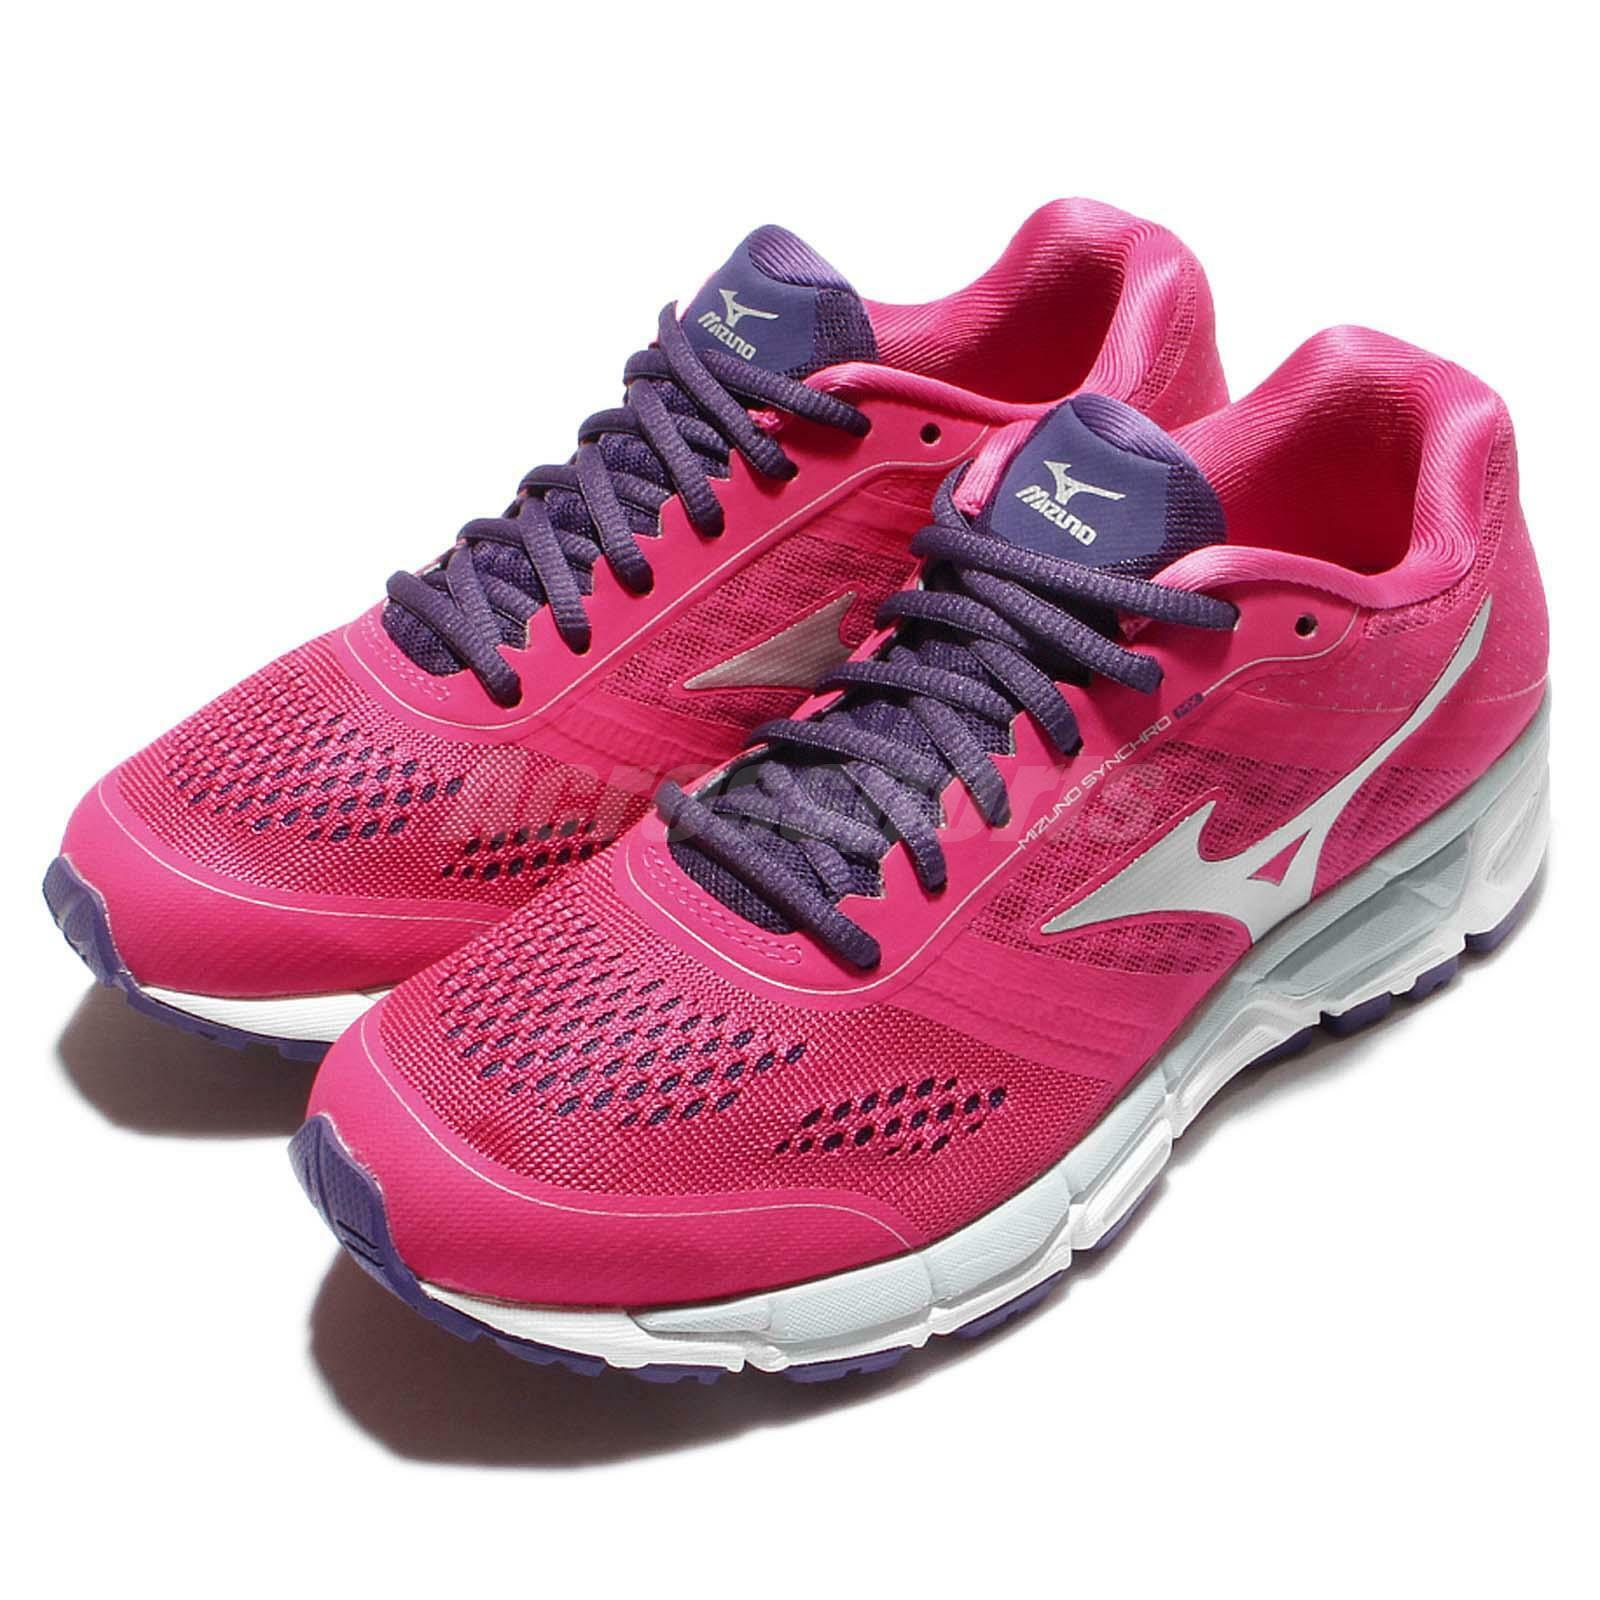 Mizuno Synchro MX Womens Pink White Running shoes Trainers Sneakers J1GF16-1904